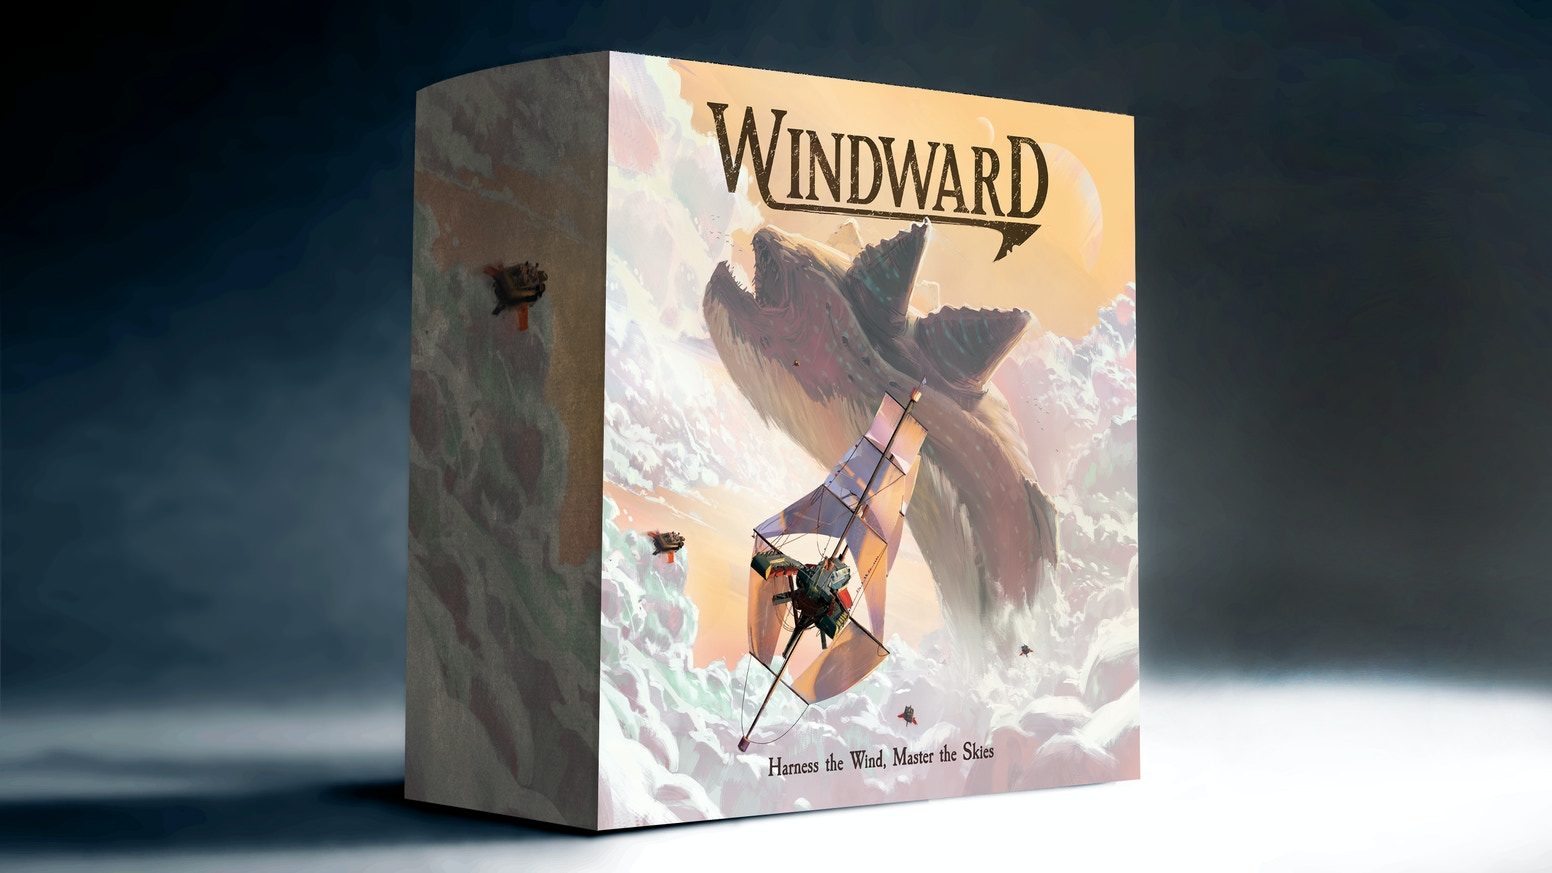 A strategic board game. Become the most notorious sky captain by harnessing the wind, hunting leviathans, and plundering opponents.